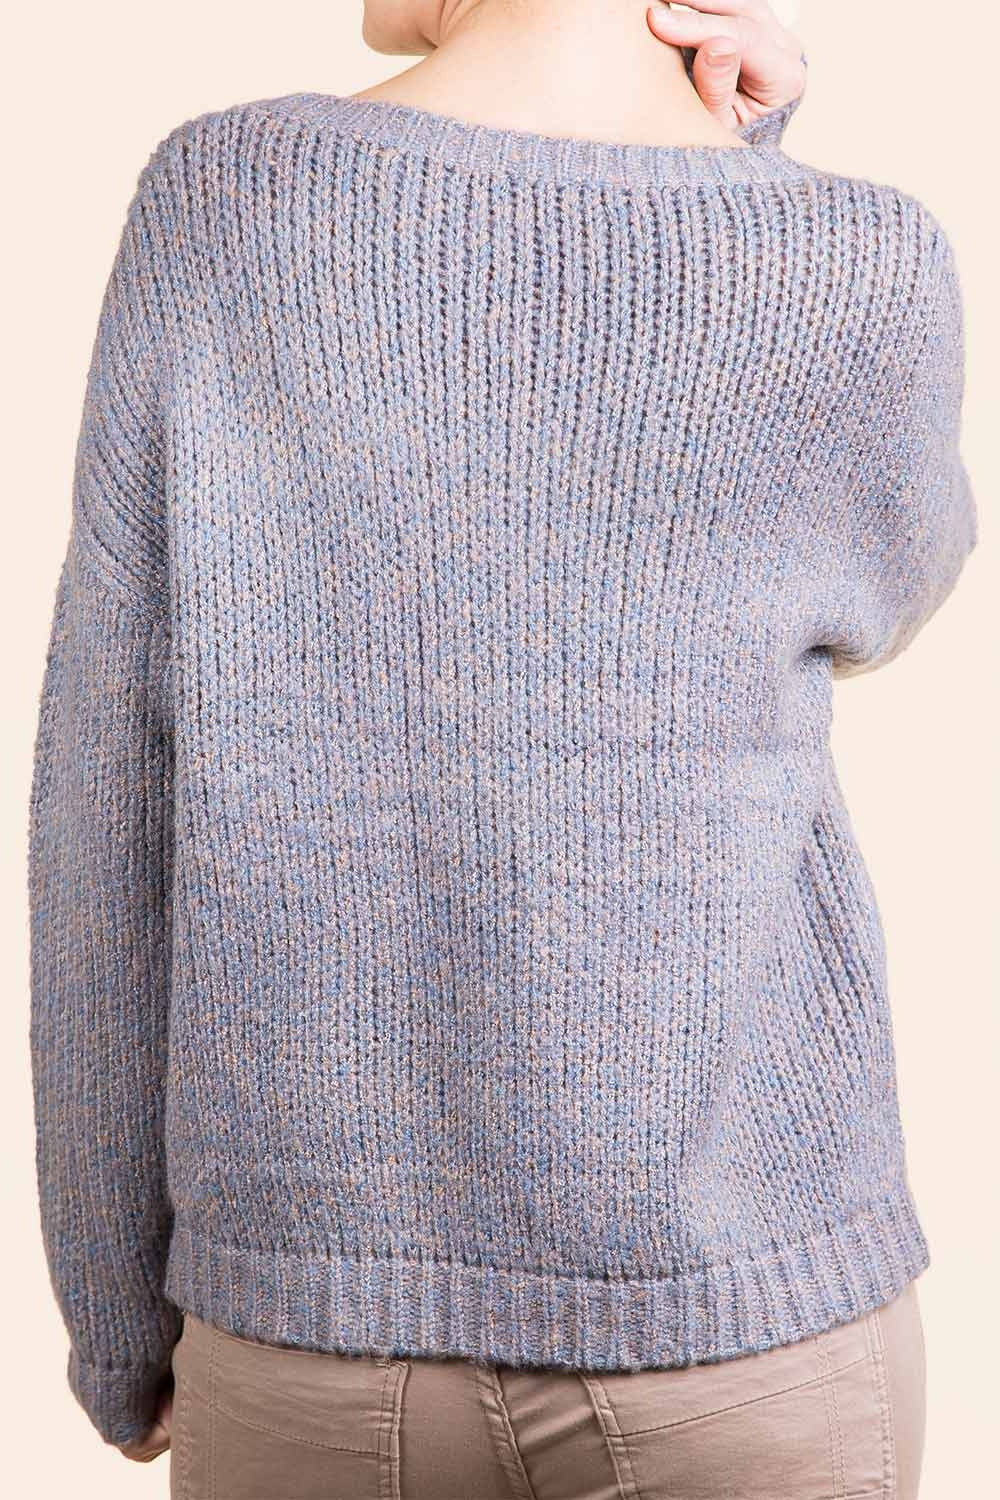 Type 2 Soft Colors Sweater